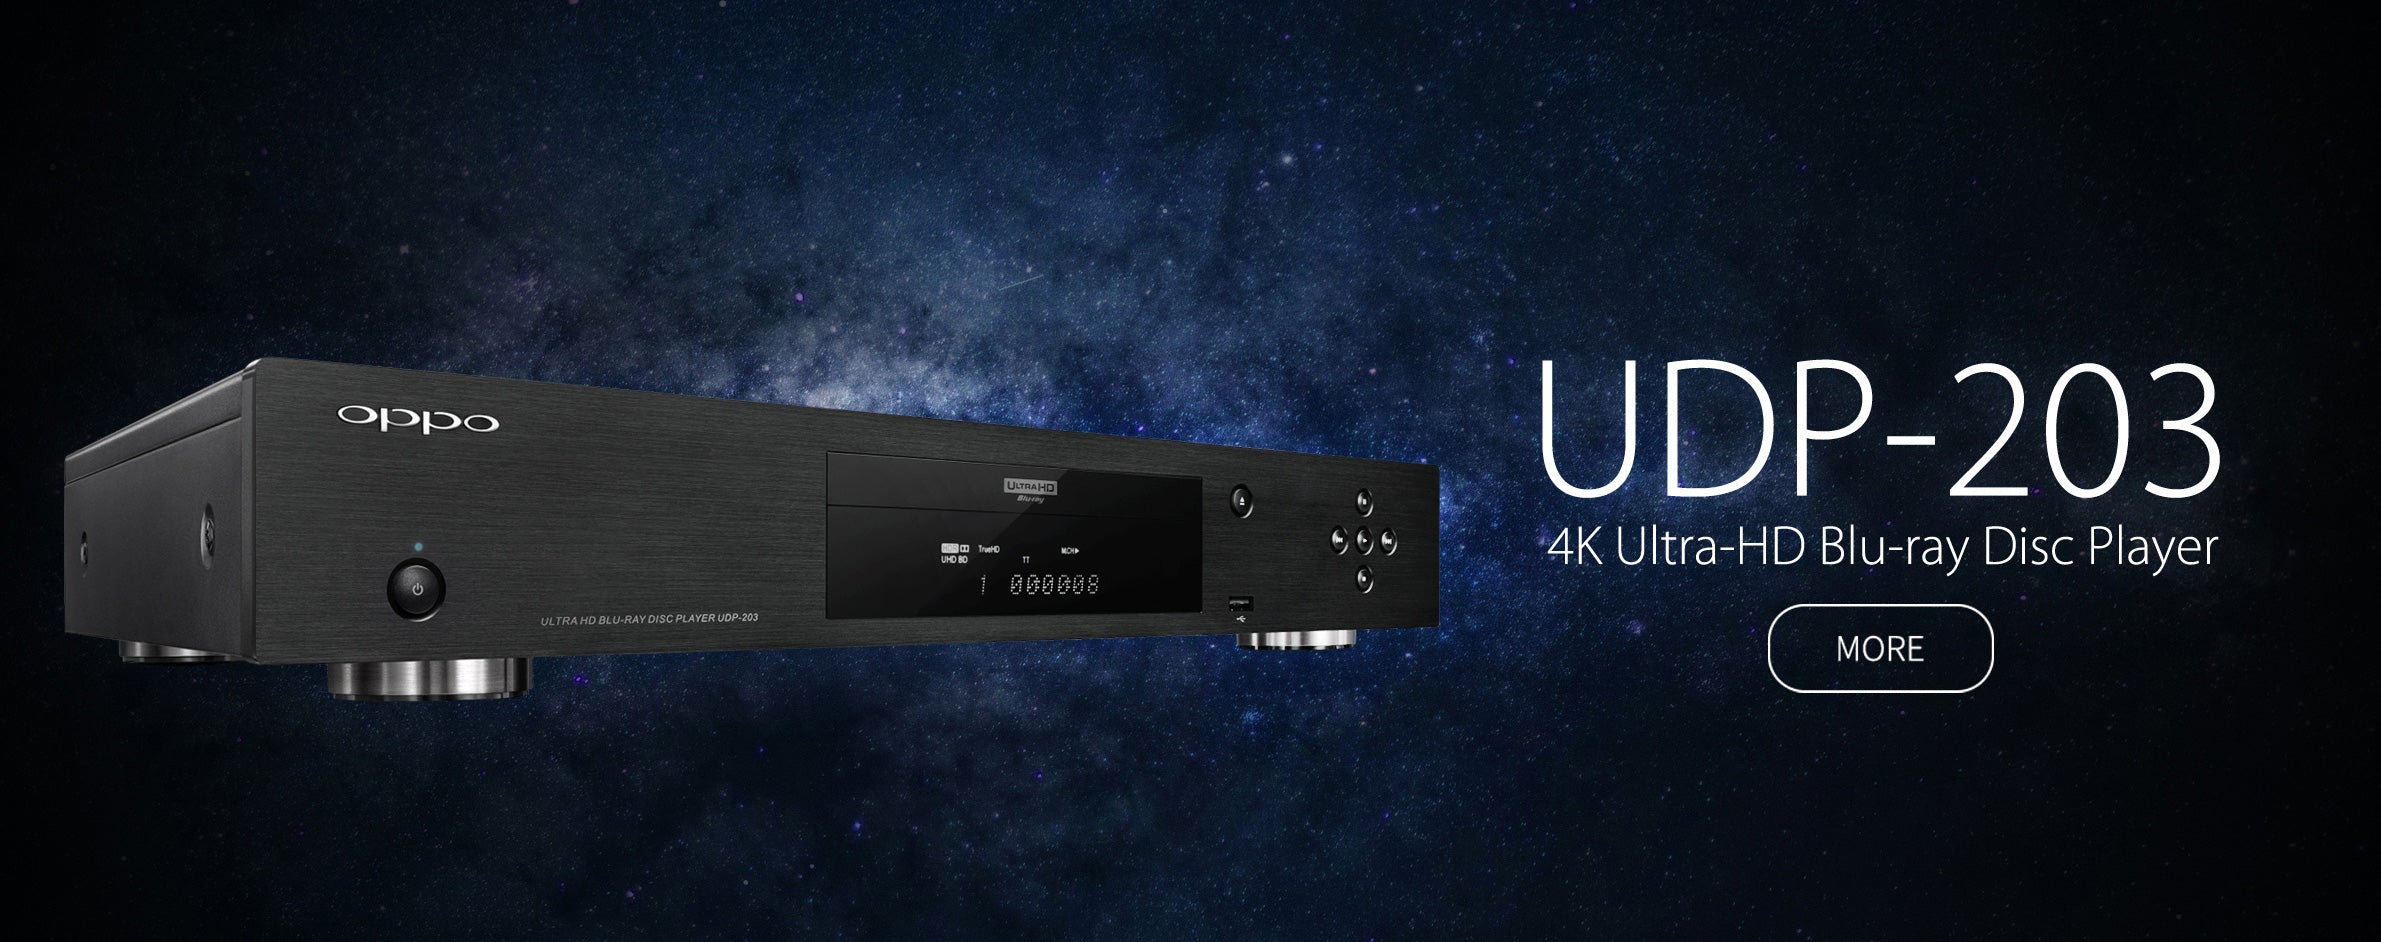 OPPO Digital New Zealand UDP-203 4K UHD Blu-ray Player Banner